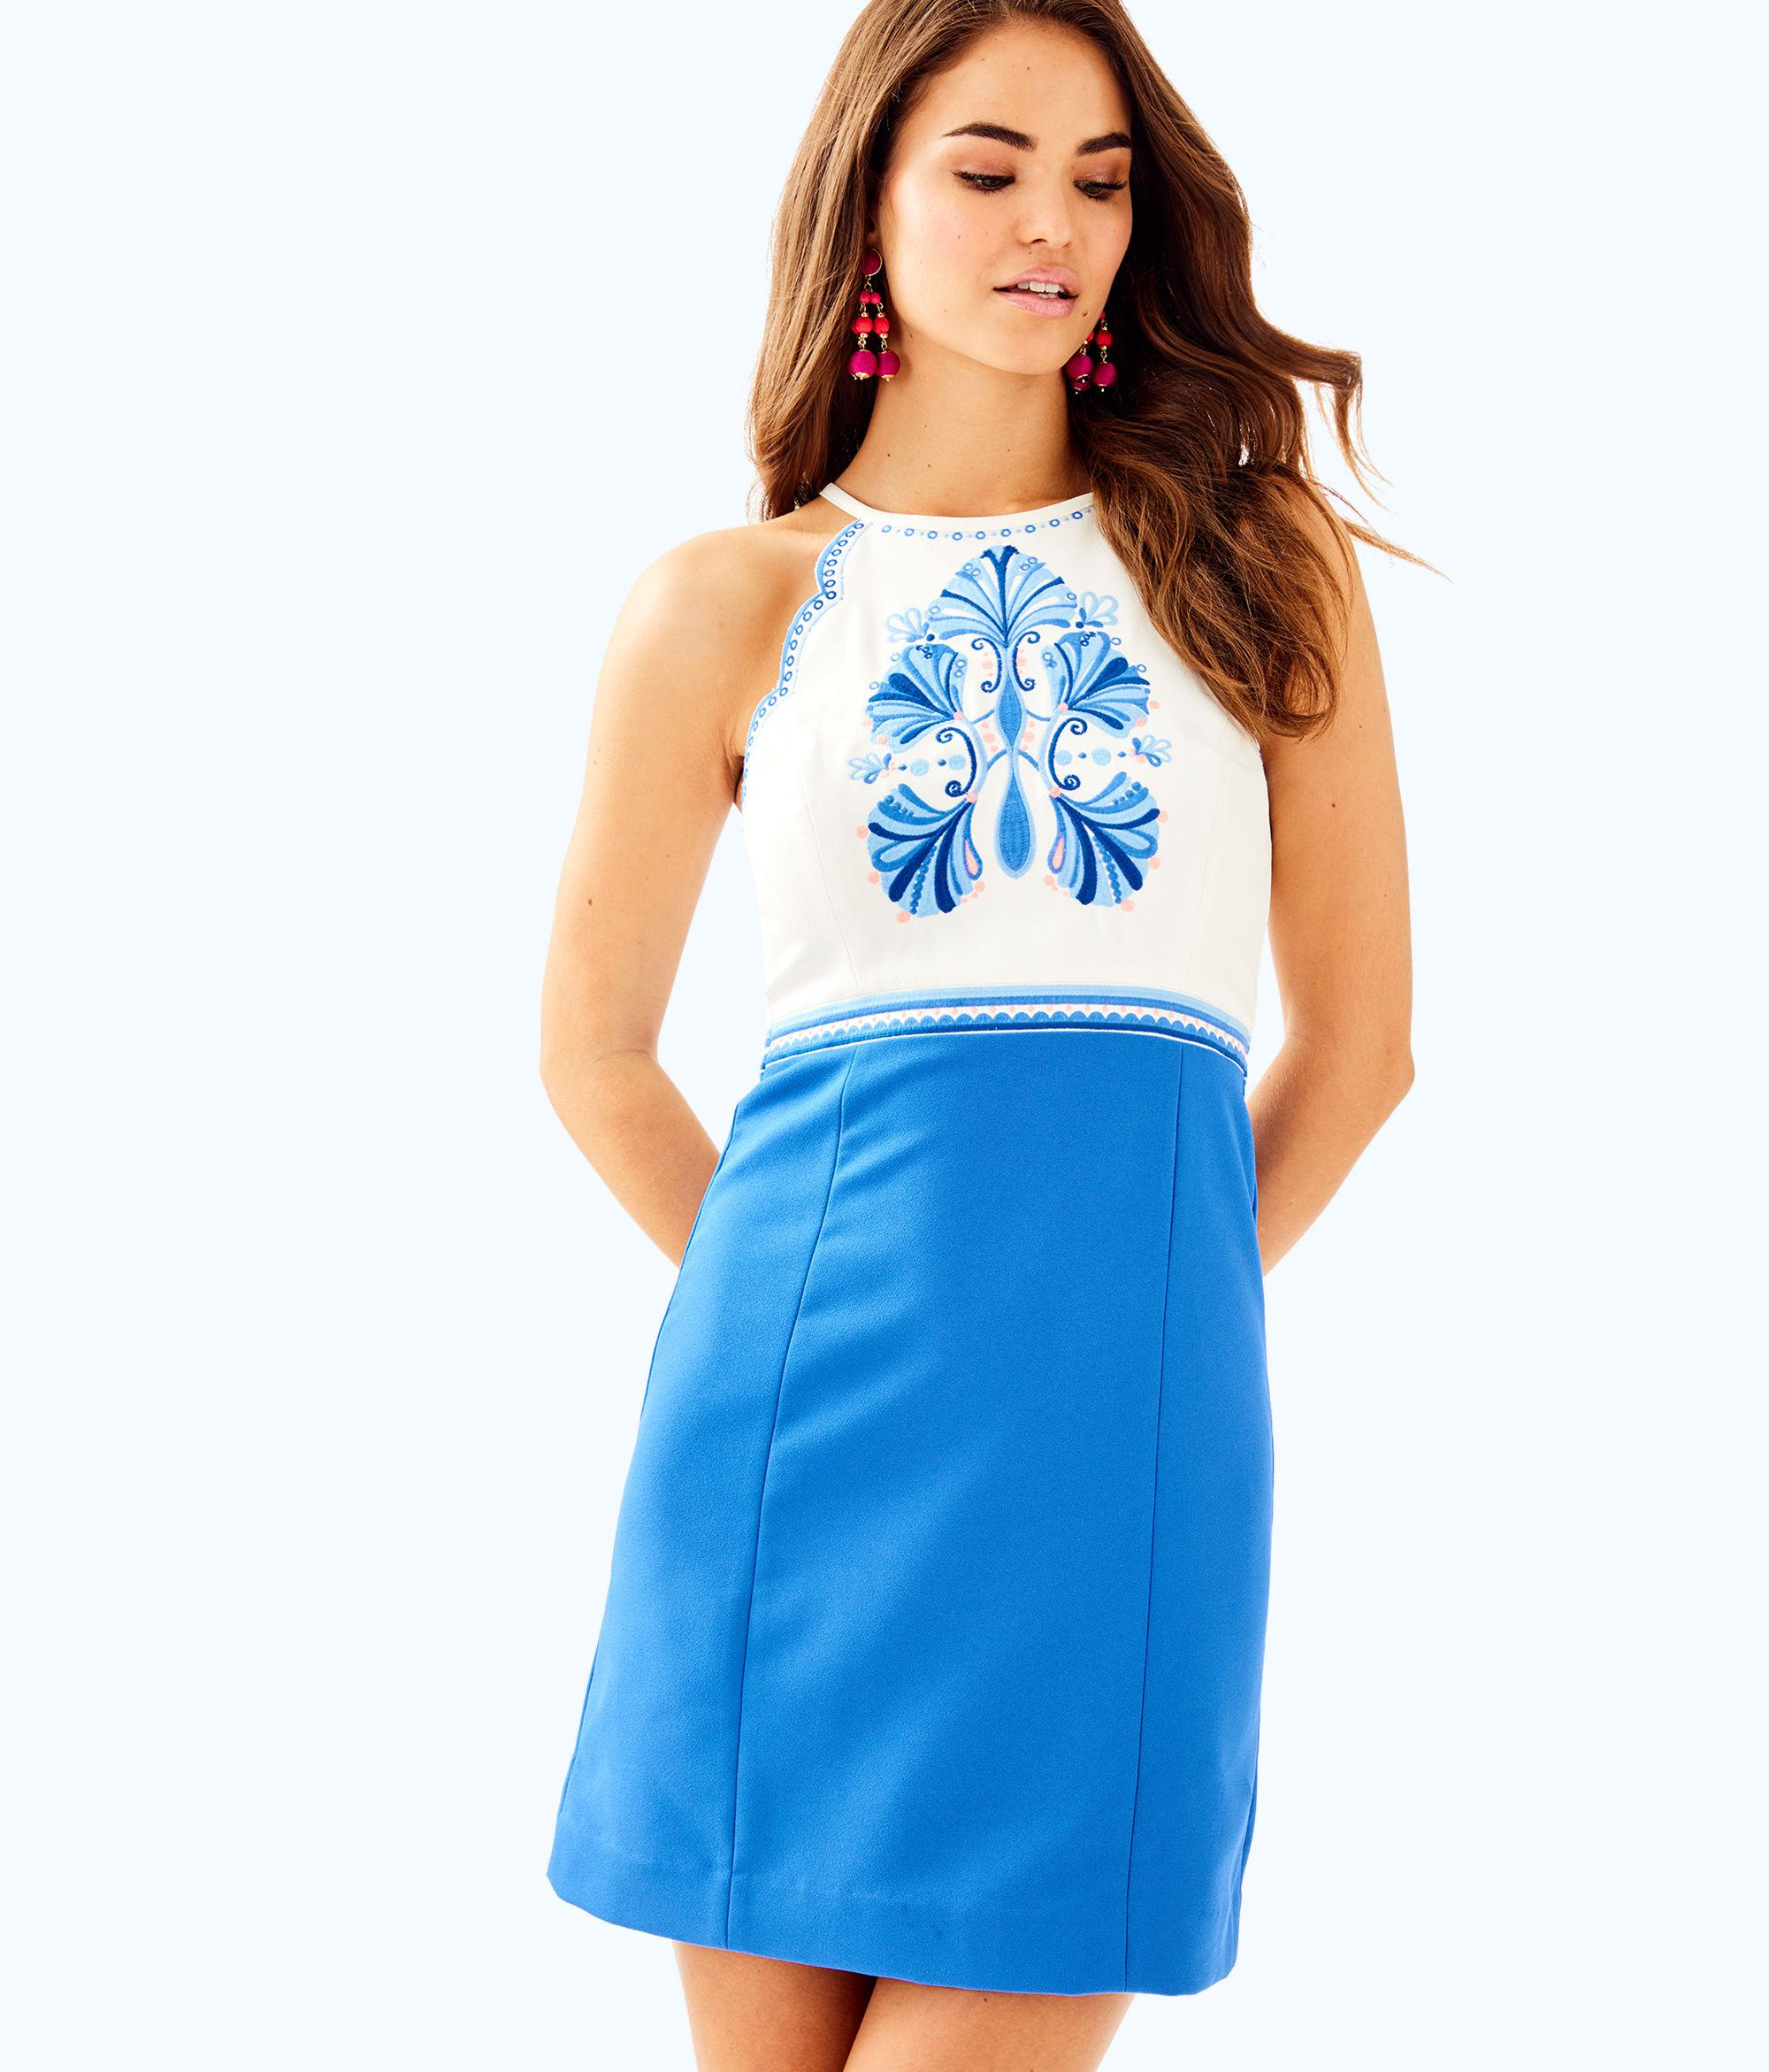 76a004c0005b04 Lilly Pulitzer Adalie Stretch Shift Dress in Blue - Lyst